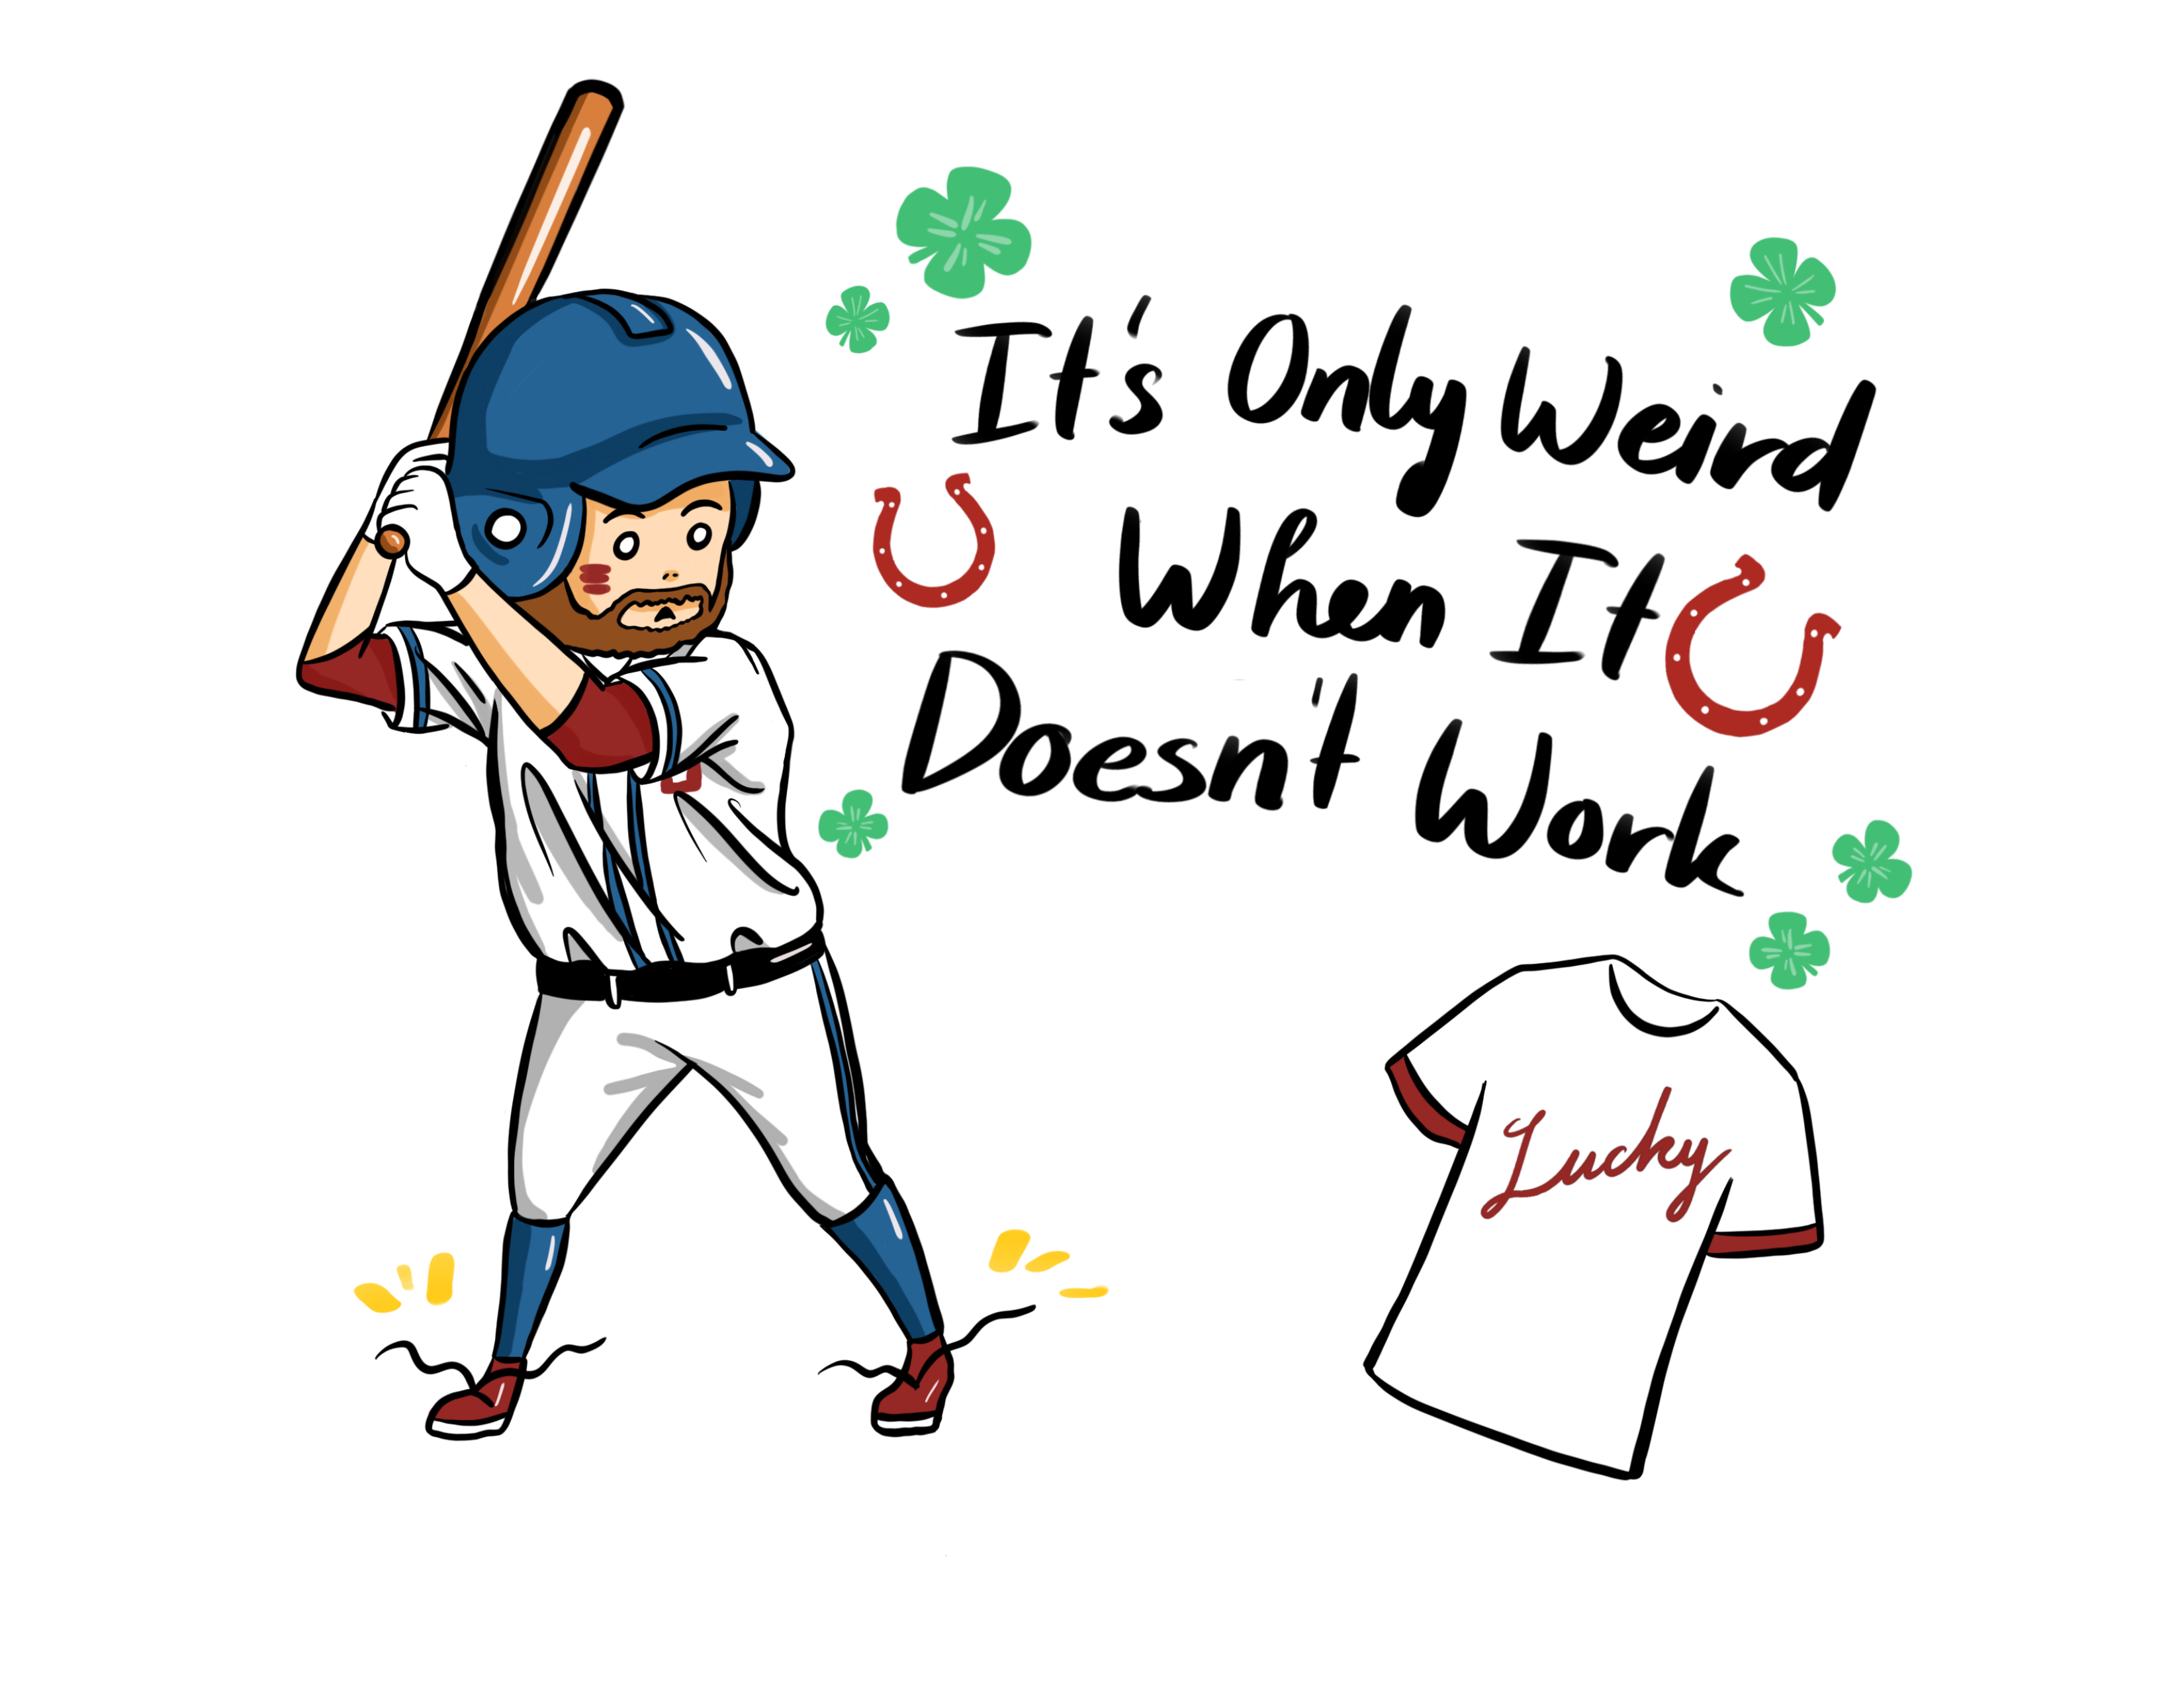 Illustration+shows+baseball+player+next+to+the+words%2C+%22It%27s+only+weird+when+it+doesn%27t+work%22